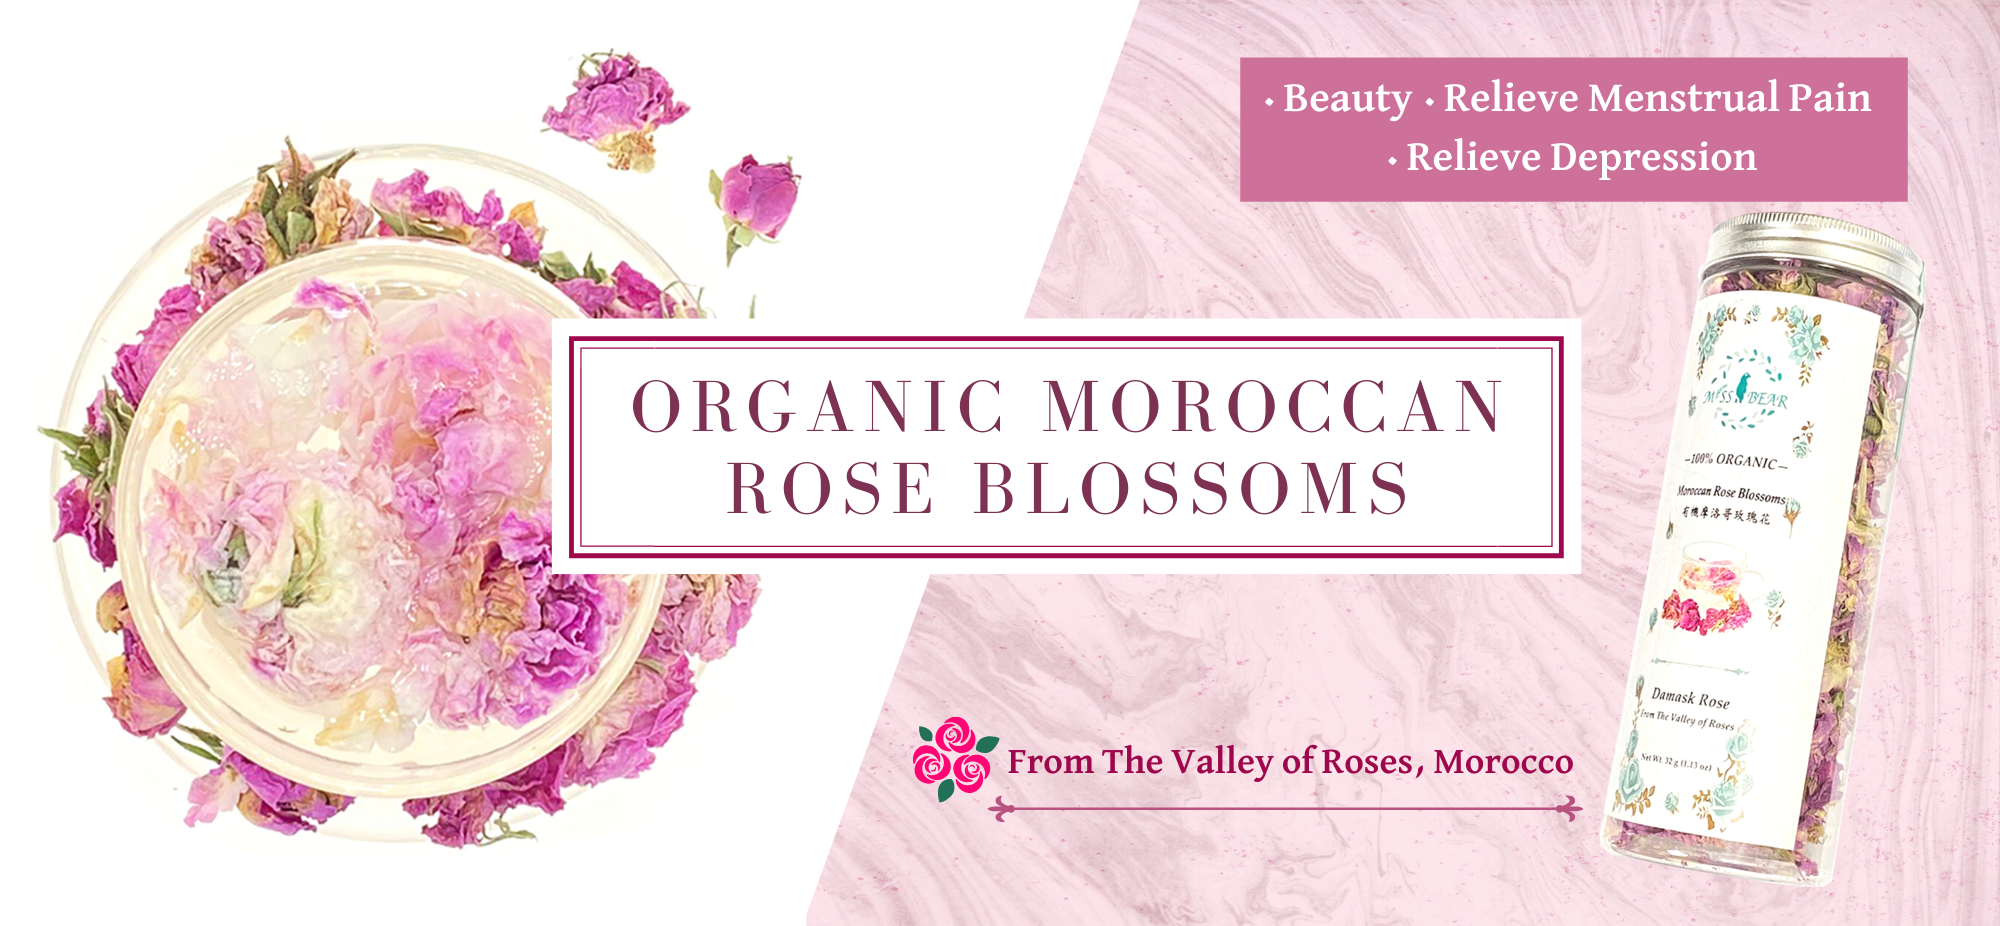 Organic Moroccan Rose Blossoms